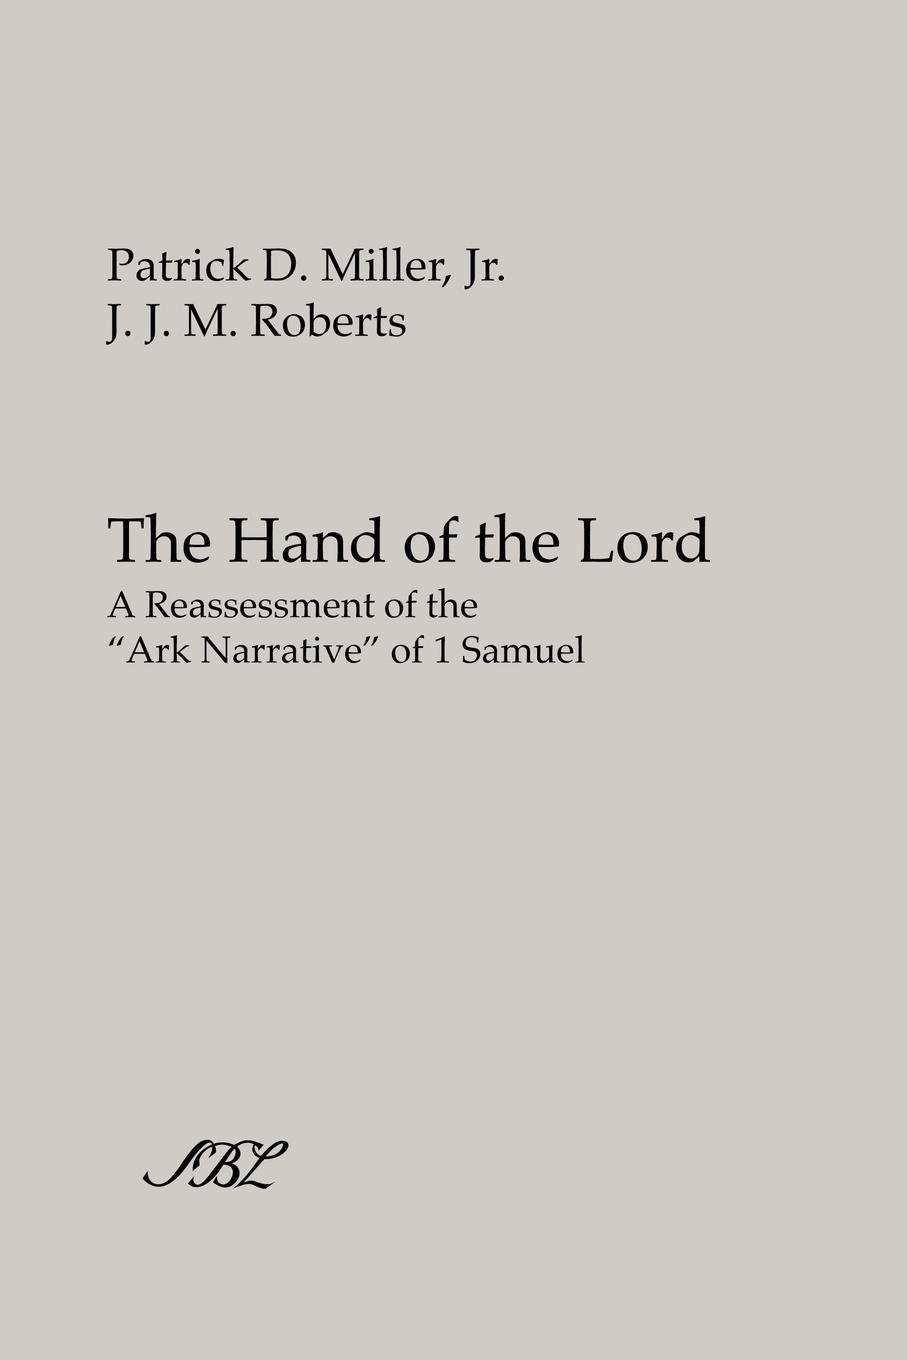 Patrick D. Jr. Miller, J. J. M. Roberts The Hand of the Lord. A Reassessment of the Ark Narrative of 1 Samuel powers m babcock j the brotherhood 1